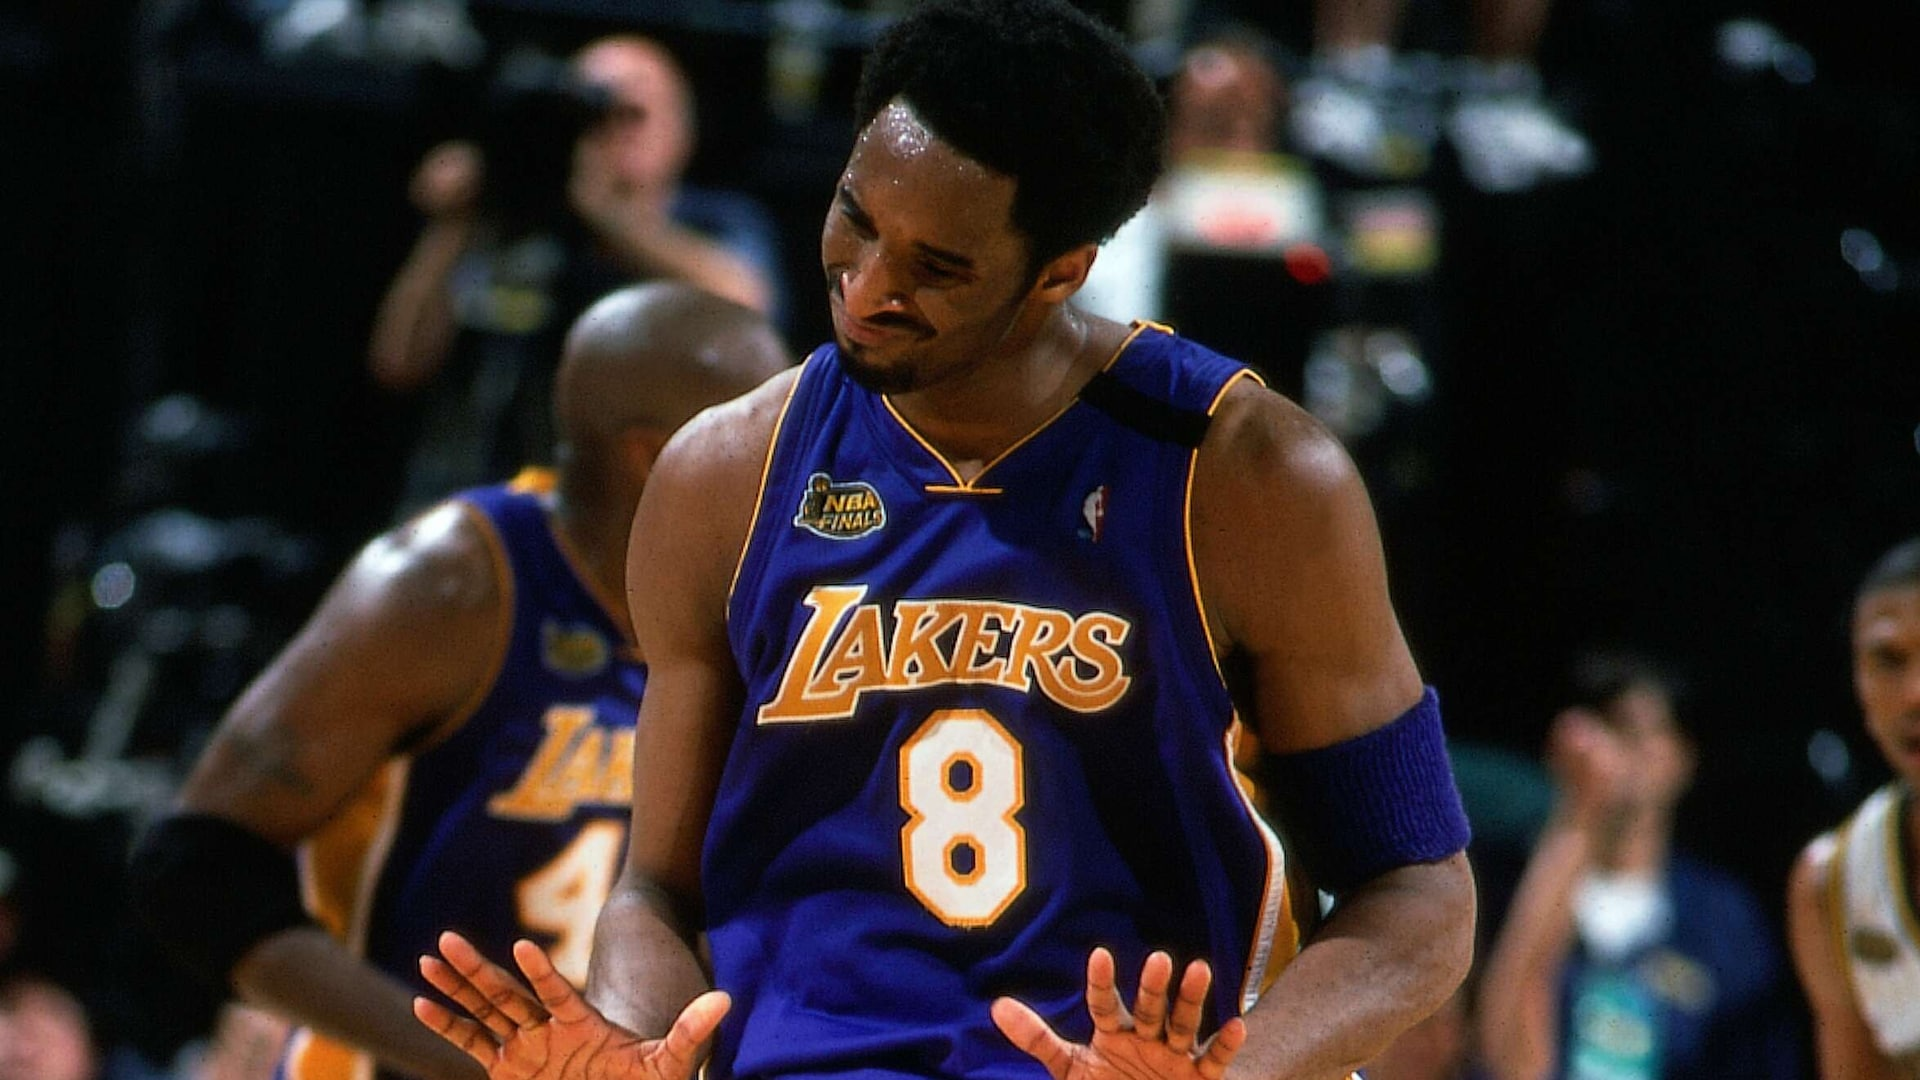 Top NBA Finals moments: Kobe Bryant takes over in Game 4 of 2000 Finals